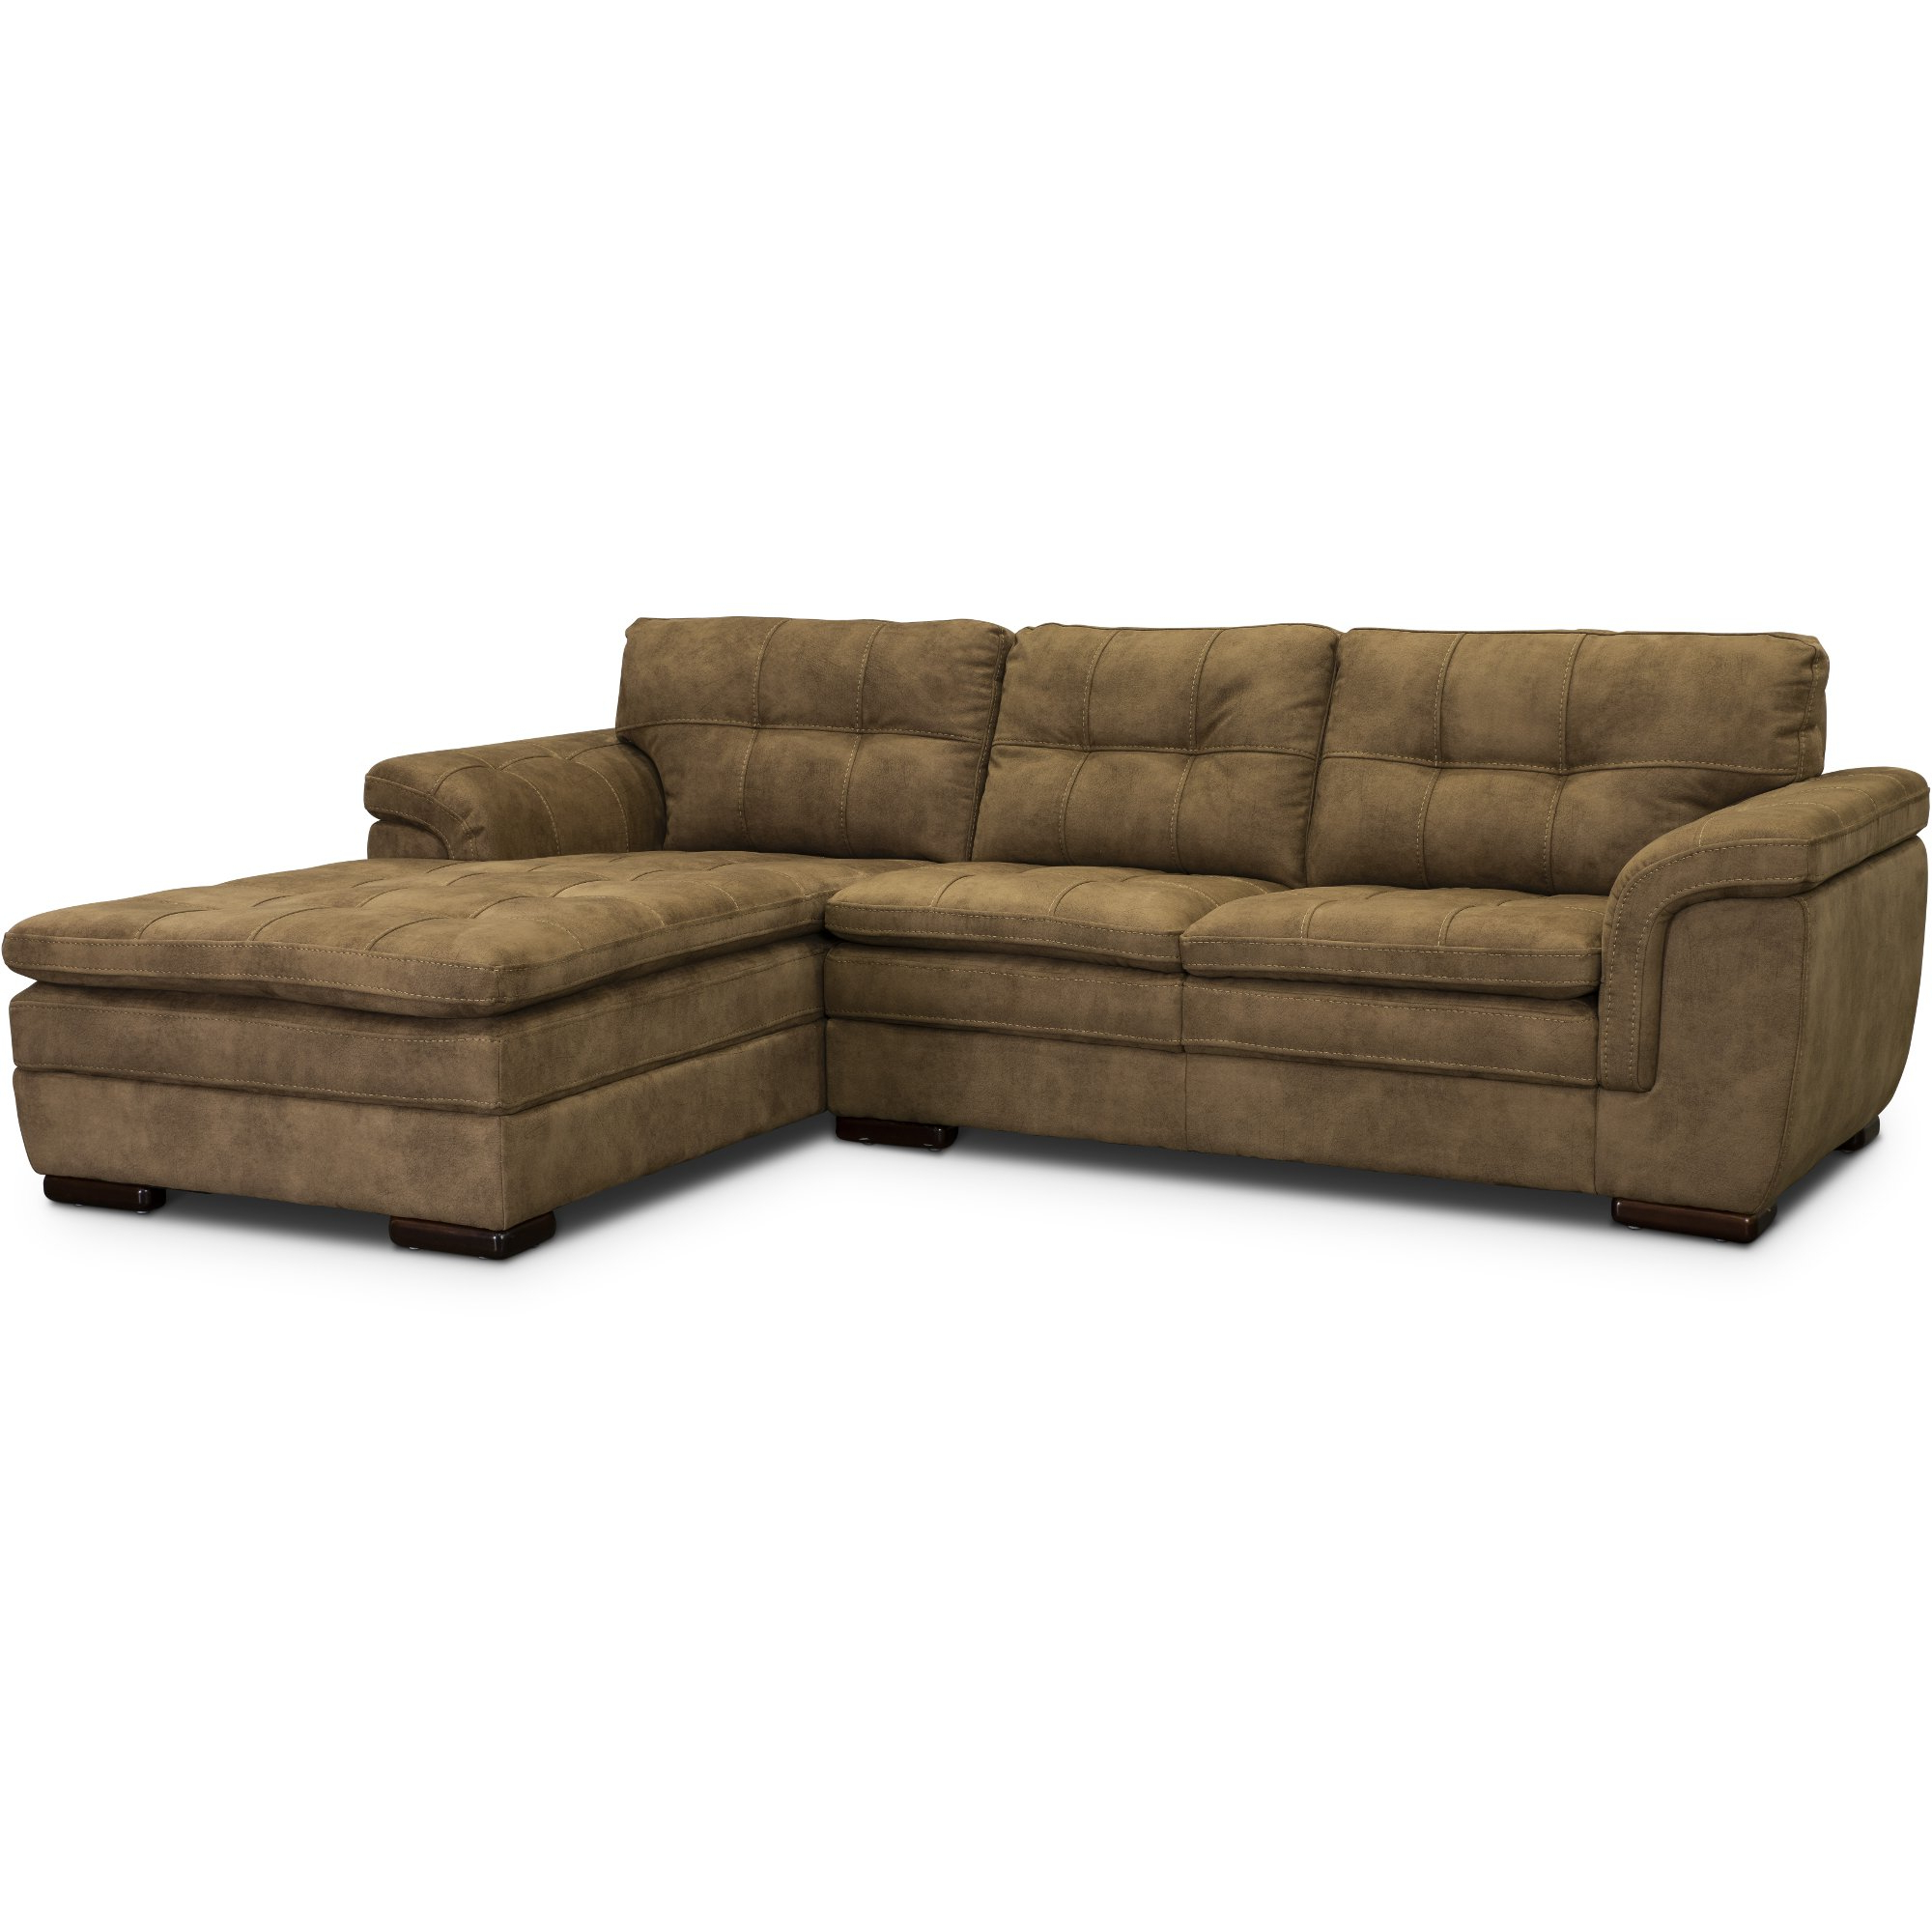 2pc Maddox Left Arm Facing Sectional Sofas With Chaise Brown Regarding Most Recent 2 Piece Sectional Sofa Chaise – Latest Sofa Pictures (View 12 of 20)